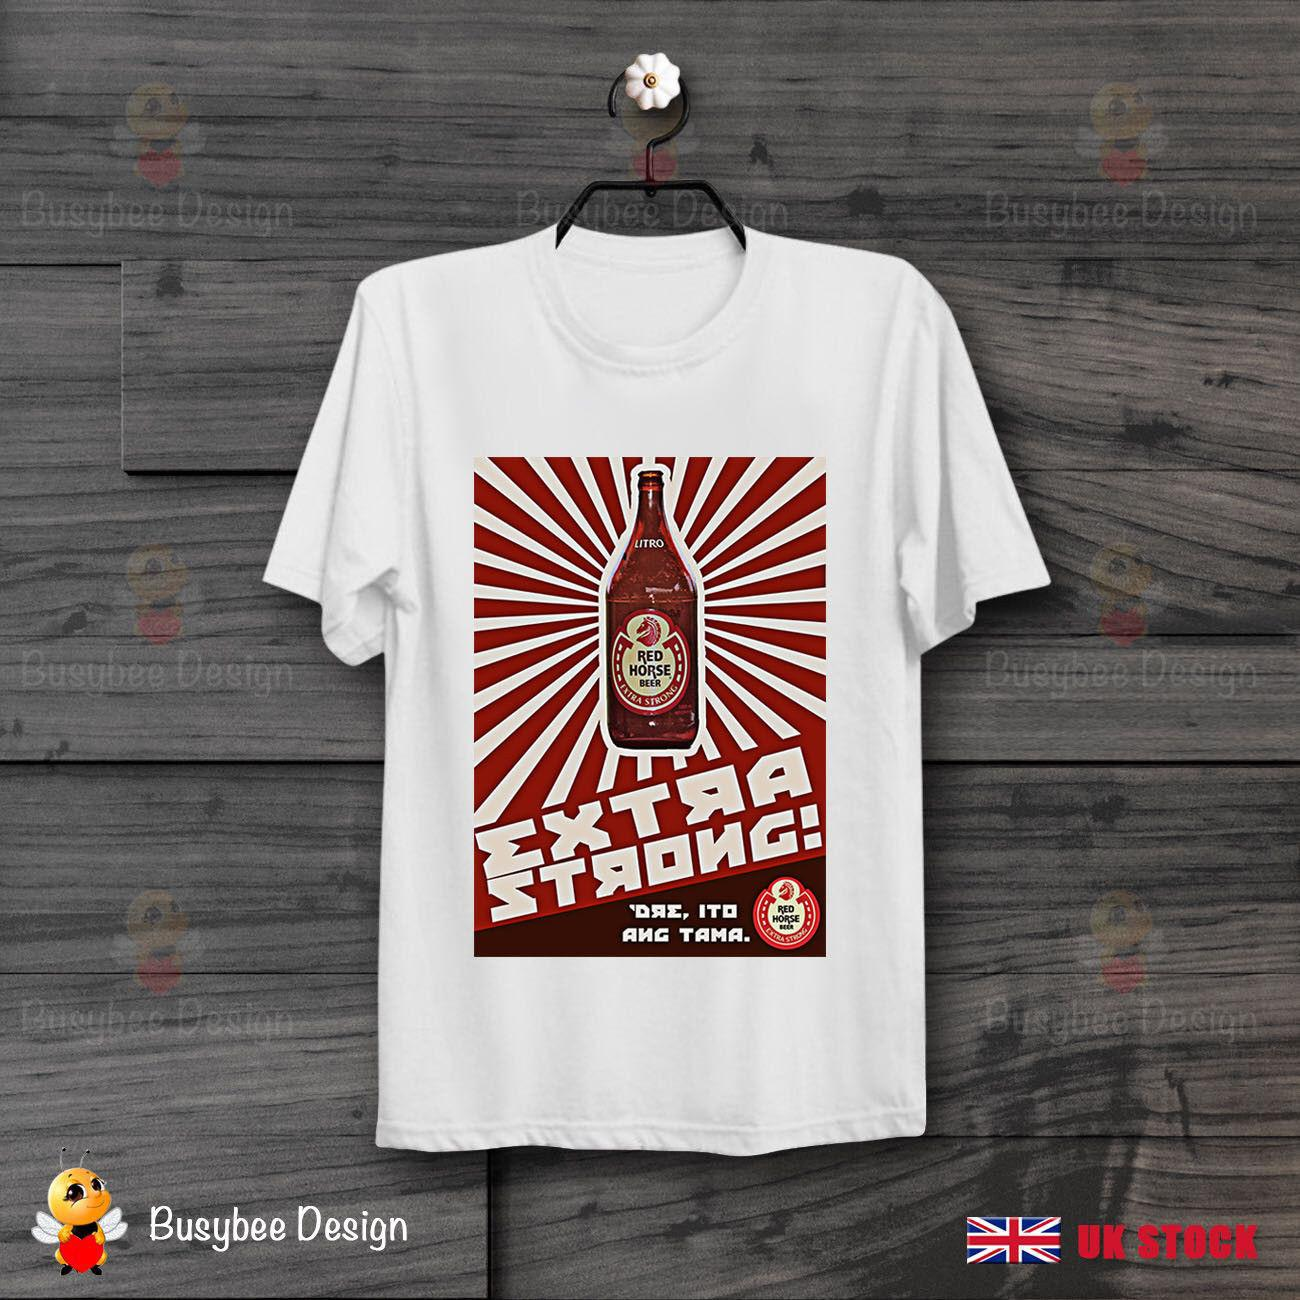 eb4ea8d4d Extra Strong Red Horse Beer Logo Philippines Manila Cool Unisex T Shirt  B344 Best T Shirt Site T Shirt Making Companies From Integritybusiness59